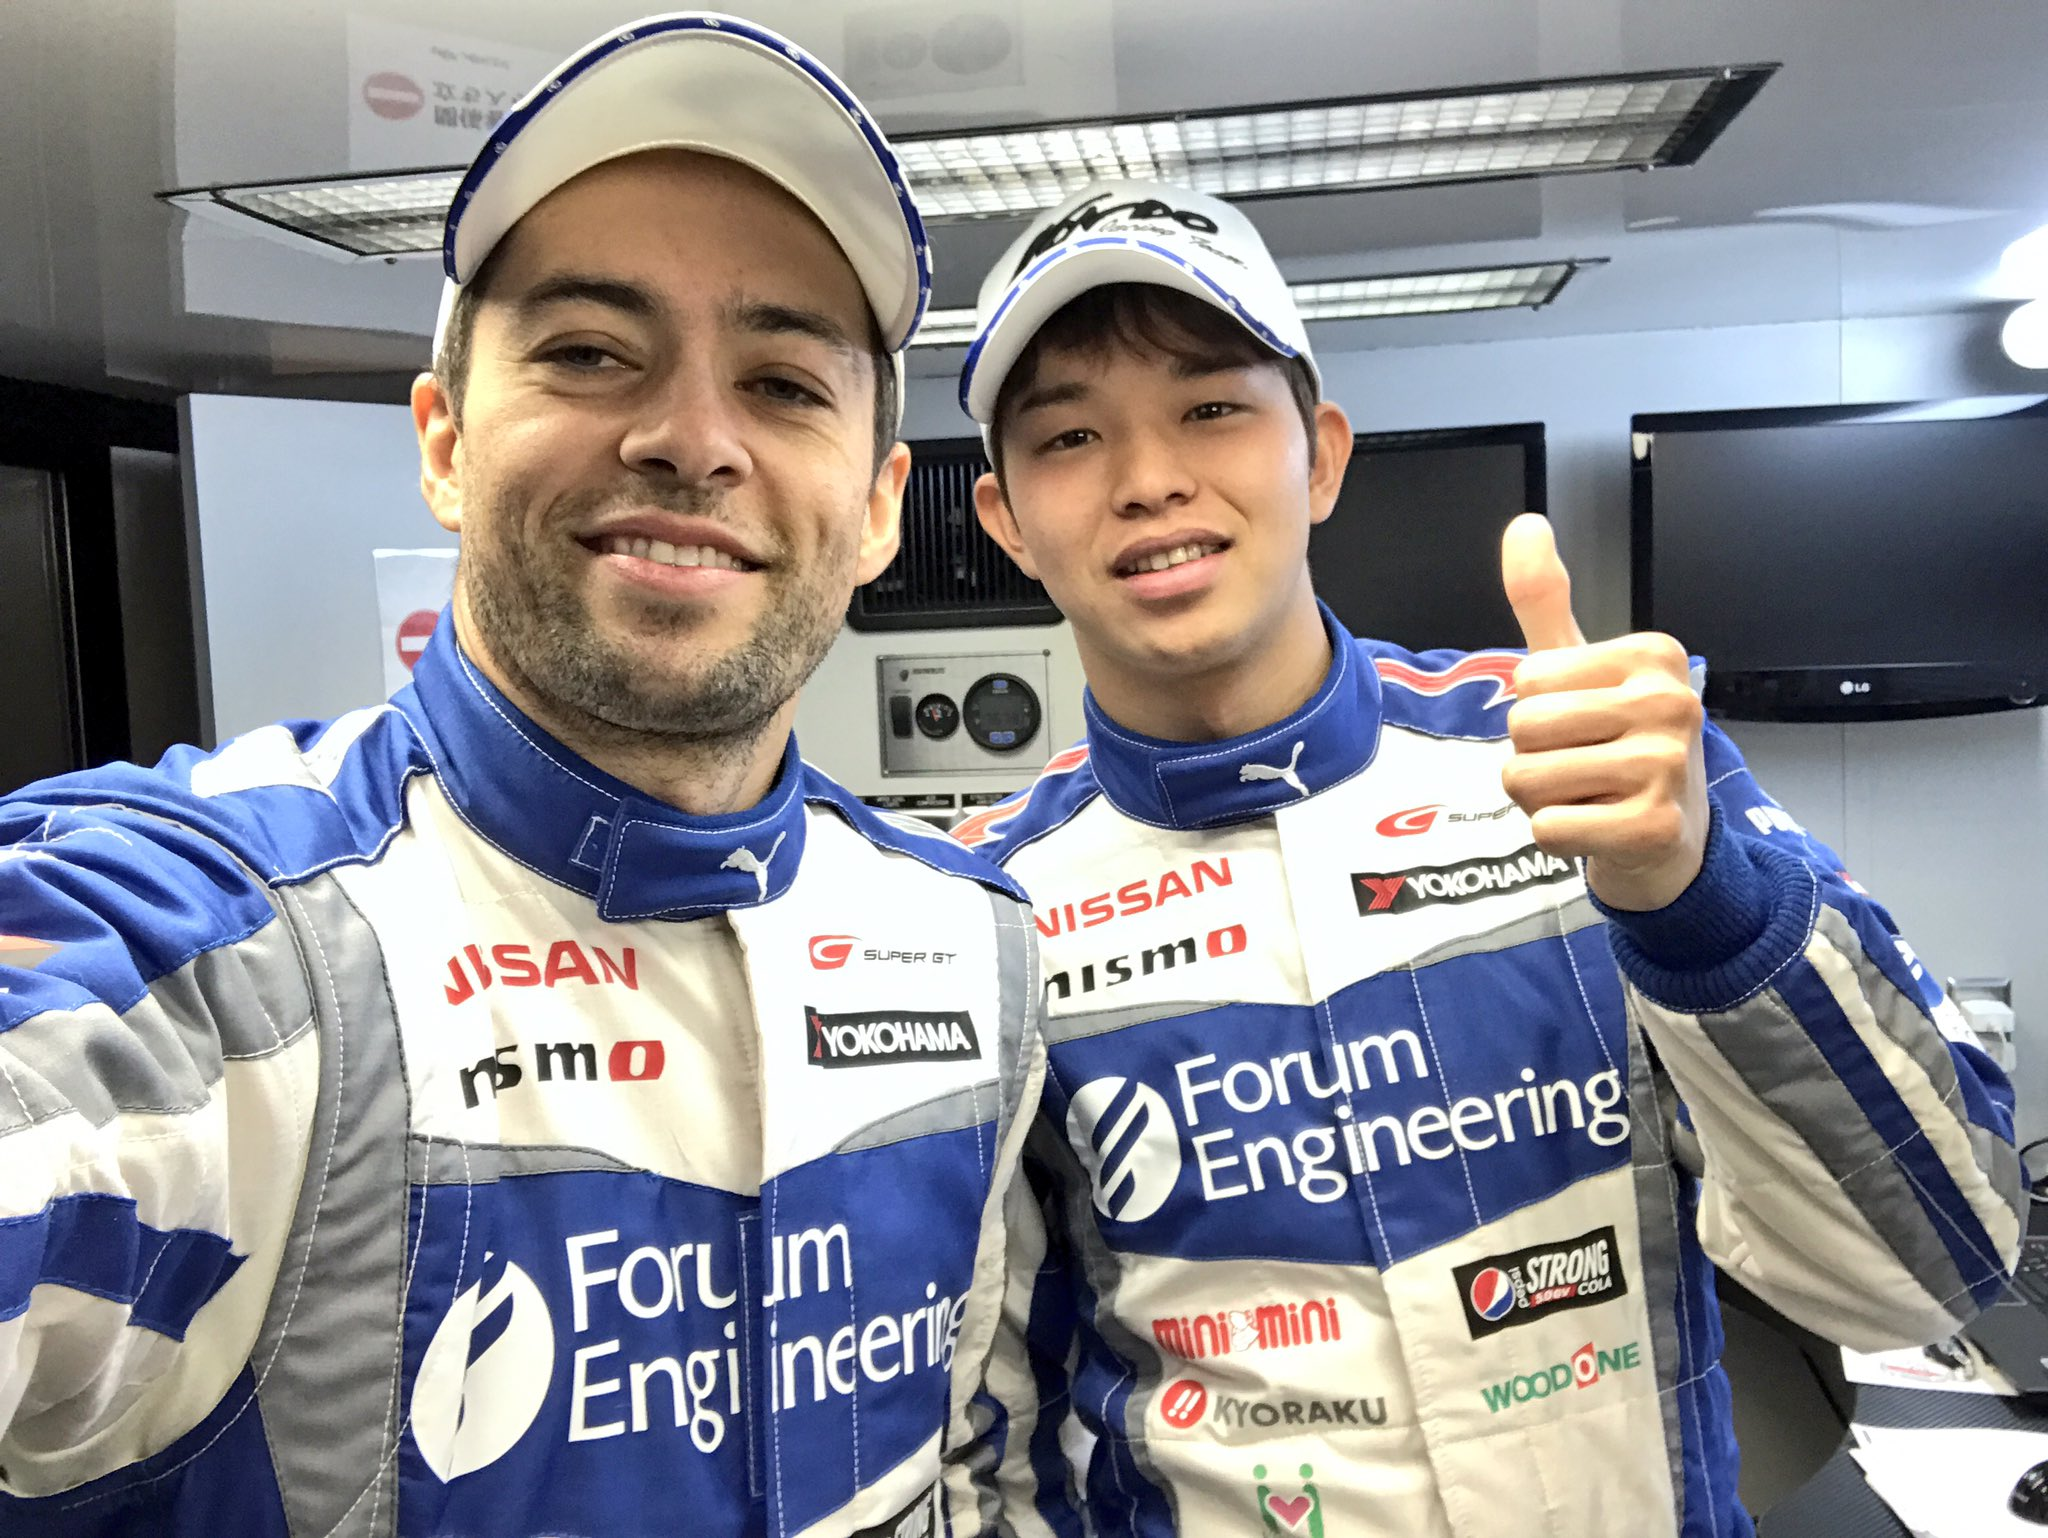 #24 #SuperGT https://t.co/5hCFggpB0n